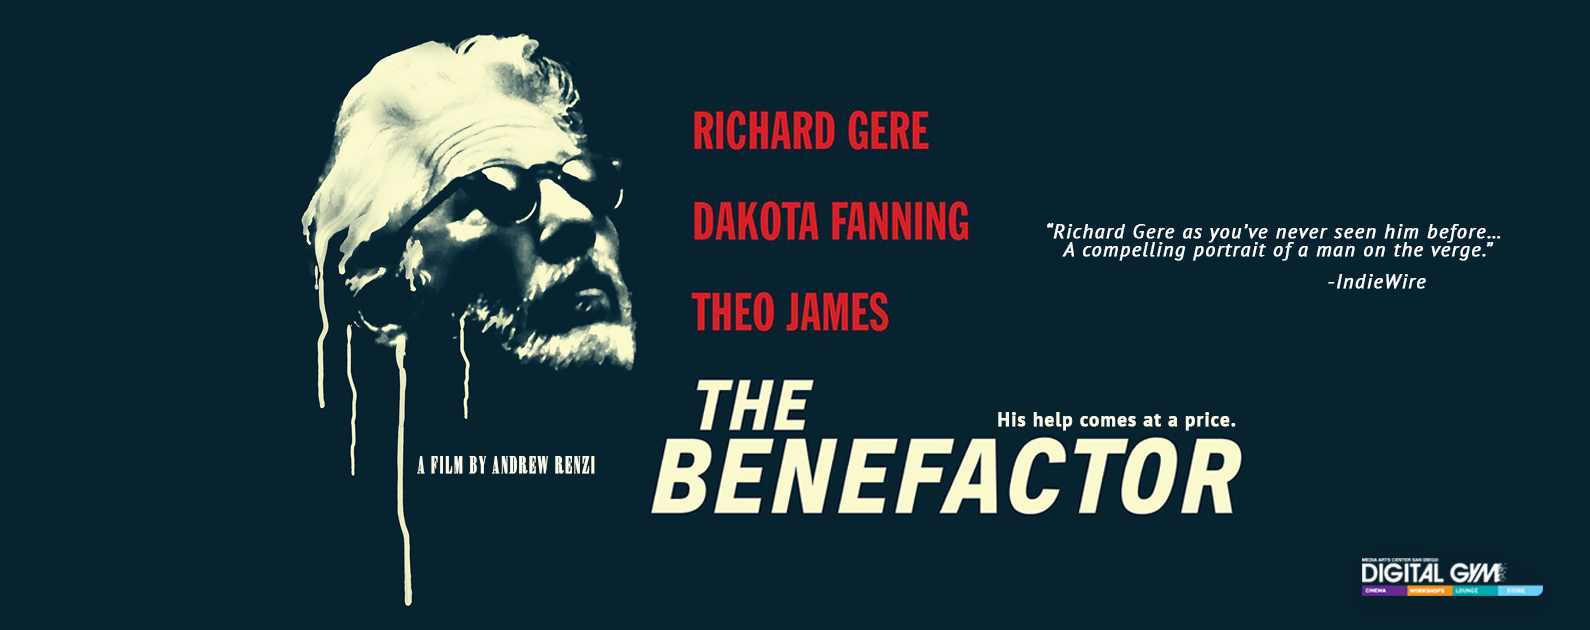 The Benefactor with Dakota Fanning, Theo James, and Richard Gere (Jan 15-21)